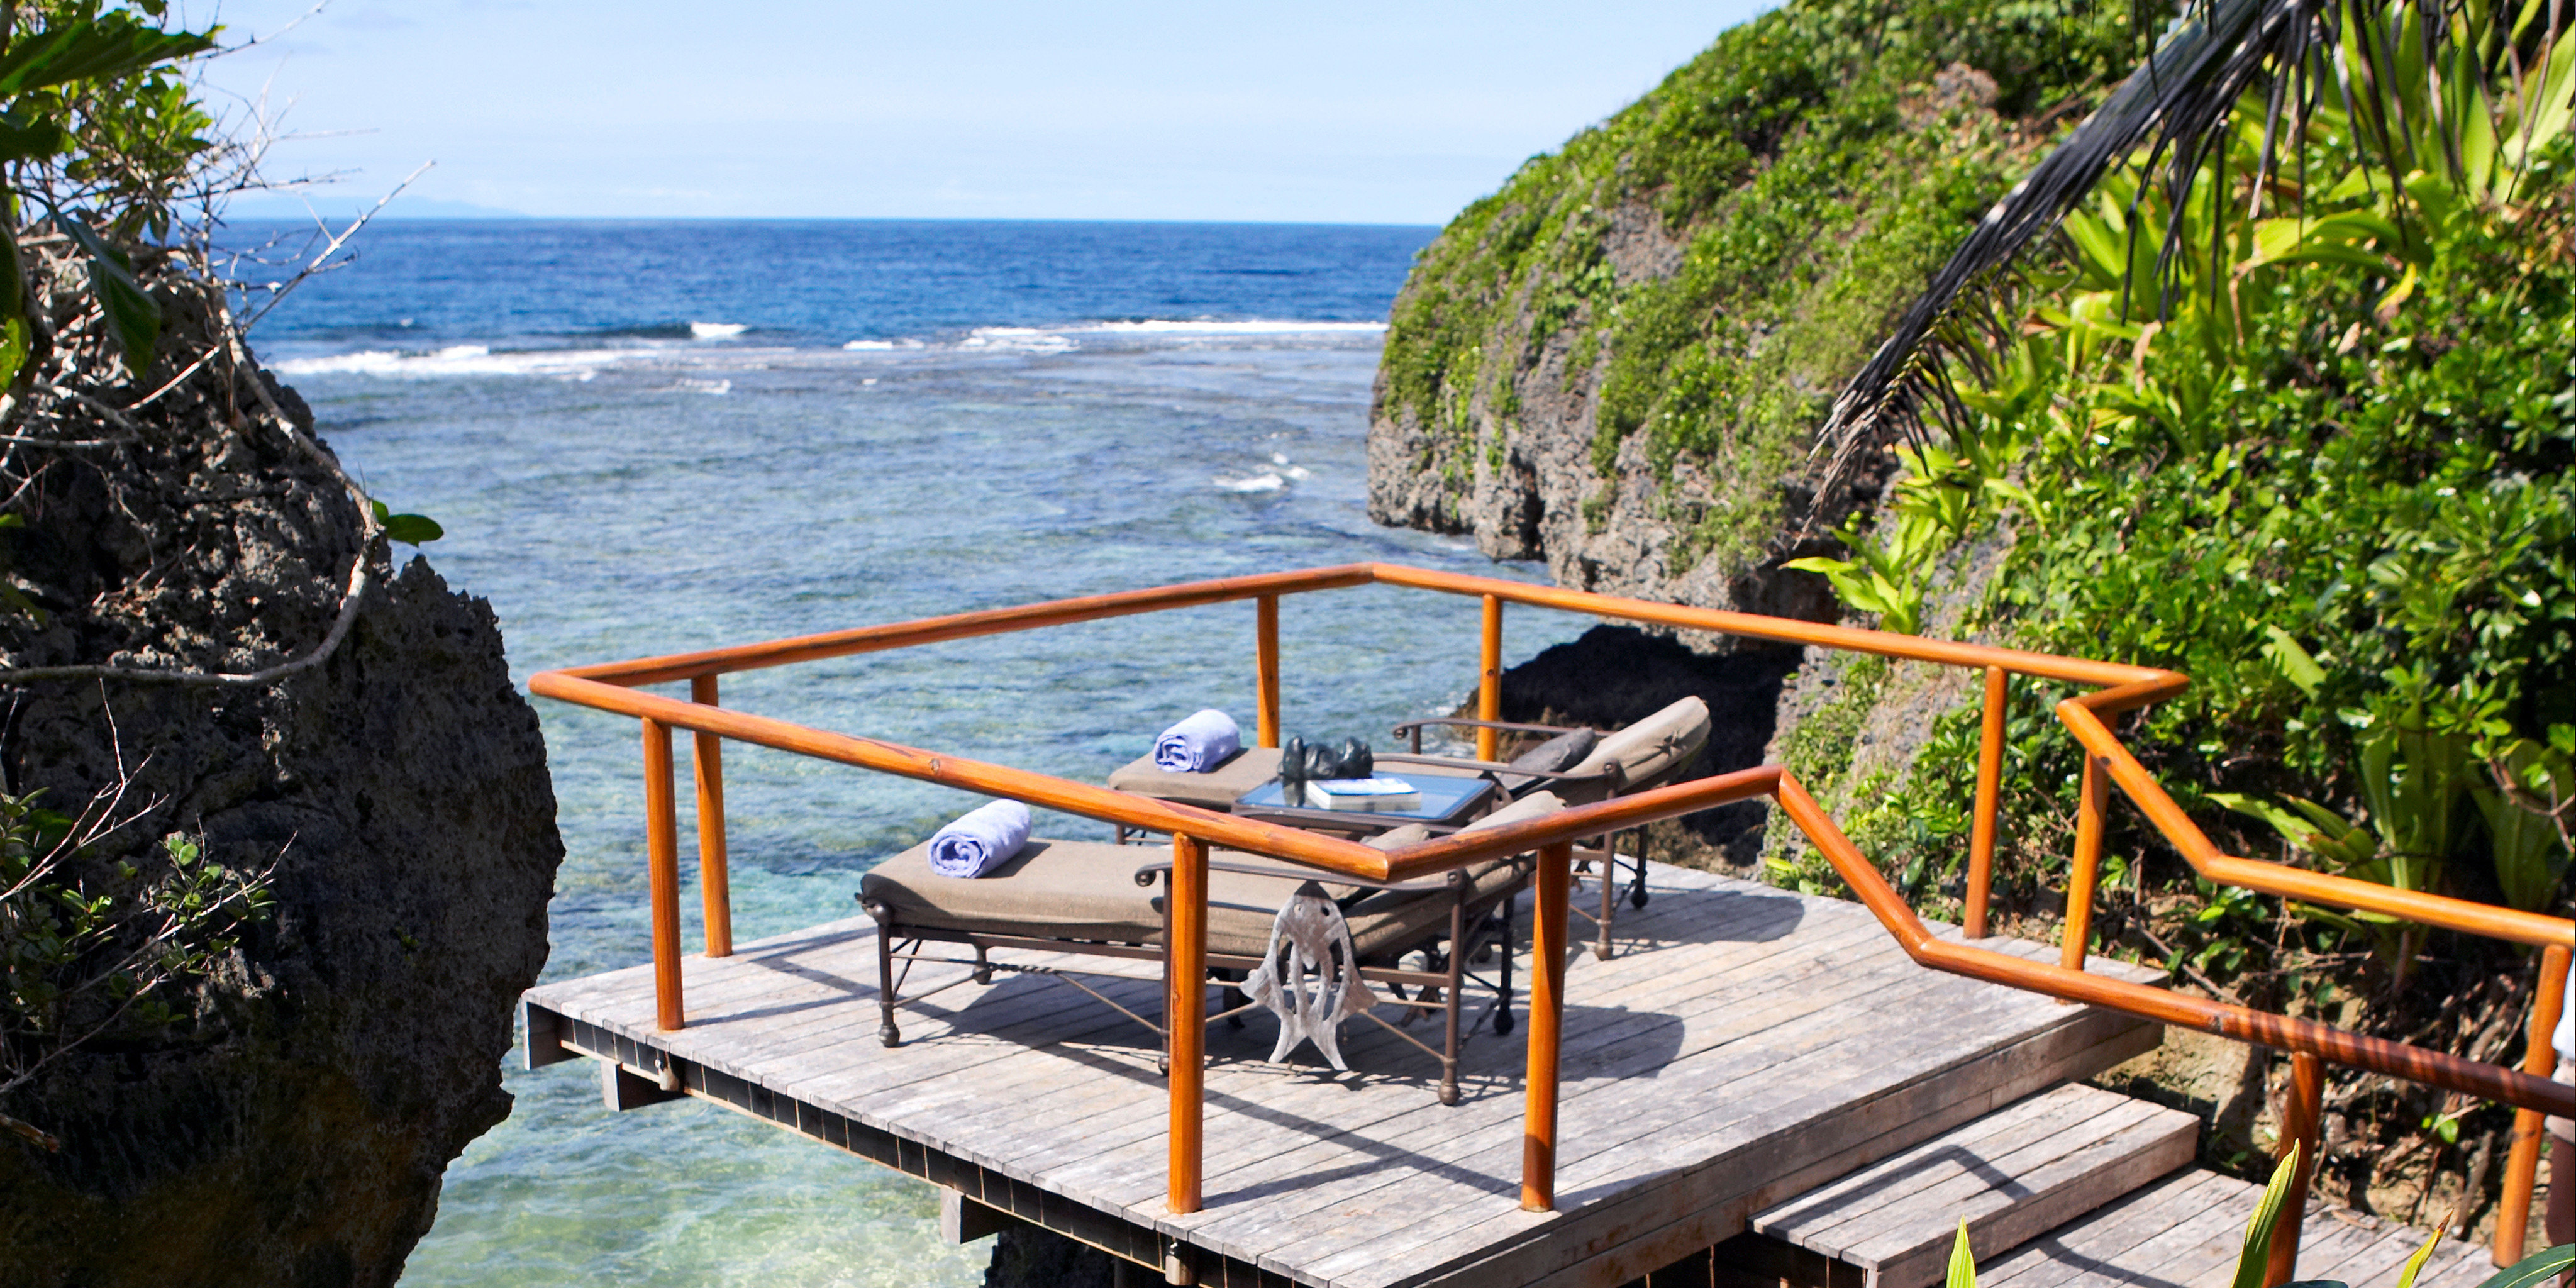 All-Inclusive Resorts Boutique Hotels Deck Hotels Luxury Travel Romance Scenic views Waterfront tree sky water leisure Resort Nature wooden Sea Beach cottage Villa swimming pool caribbean tropics overlooking